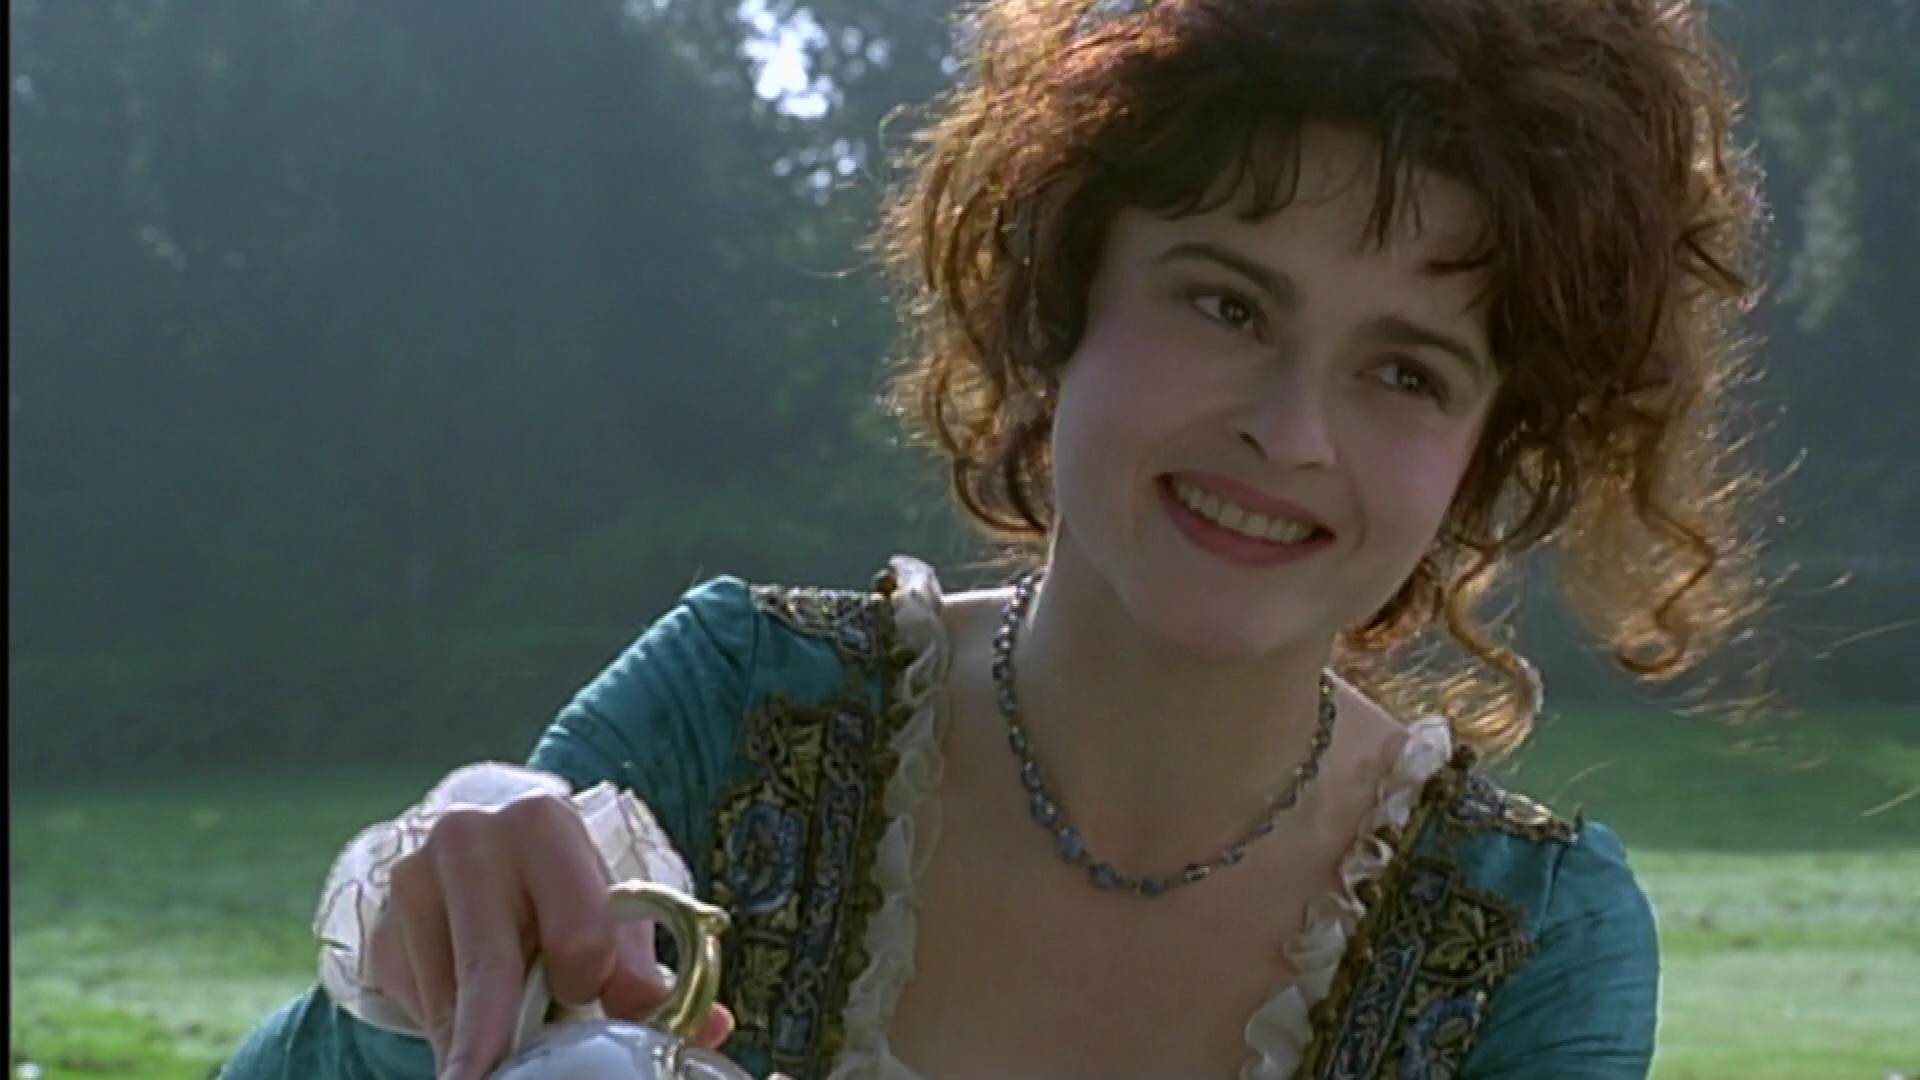 Helena Bonham Carter in Twelfth Night, pouring tea